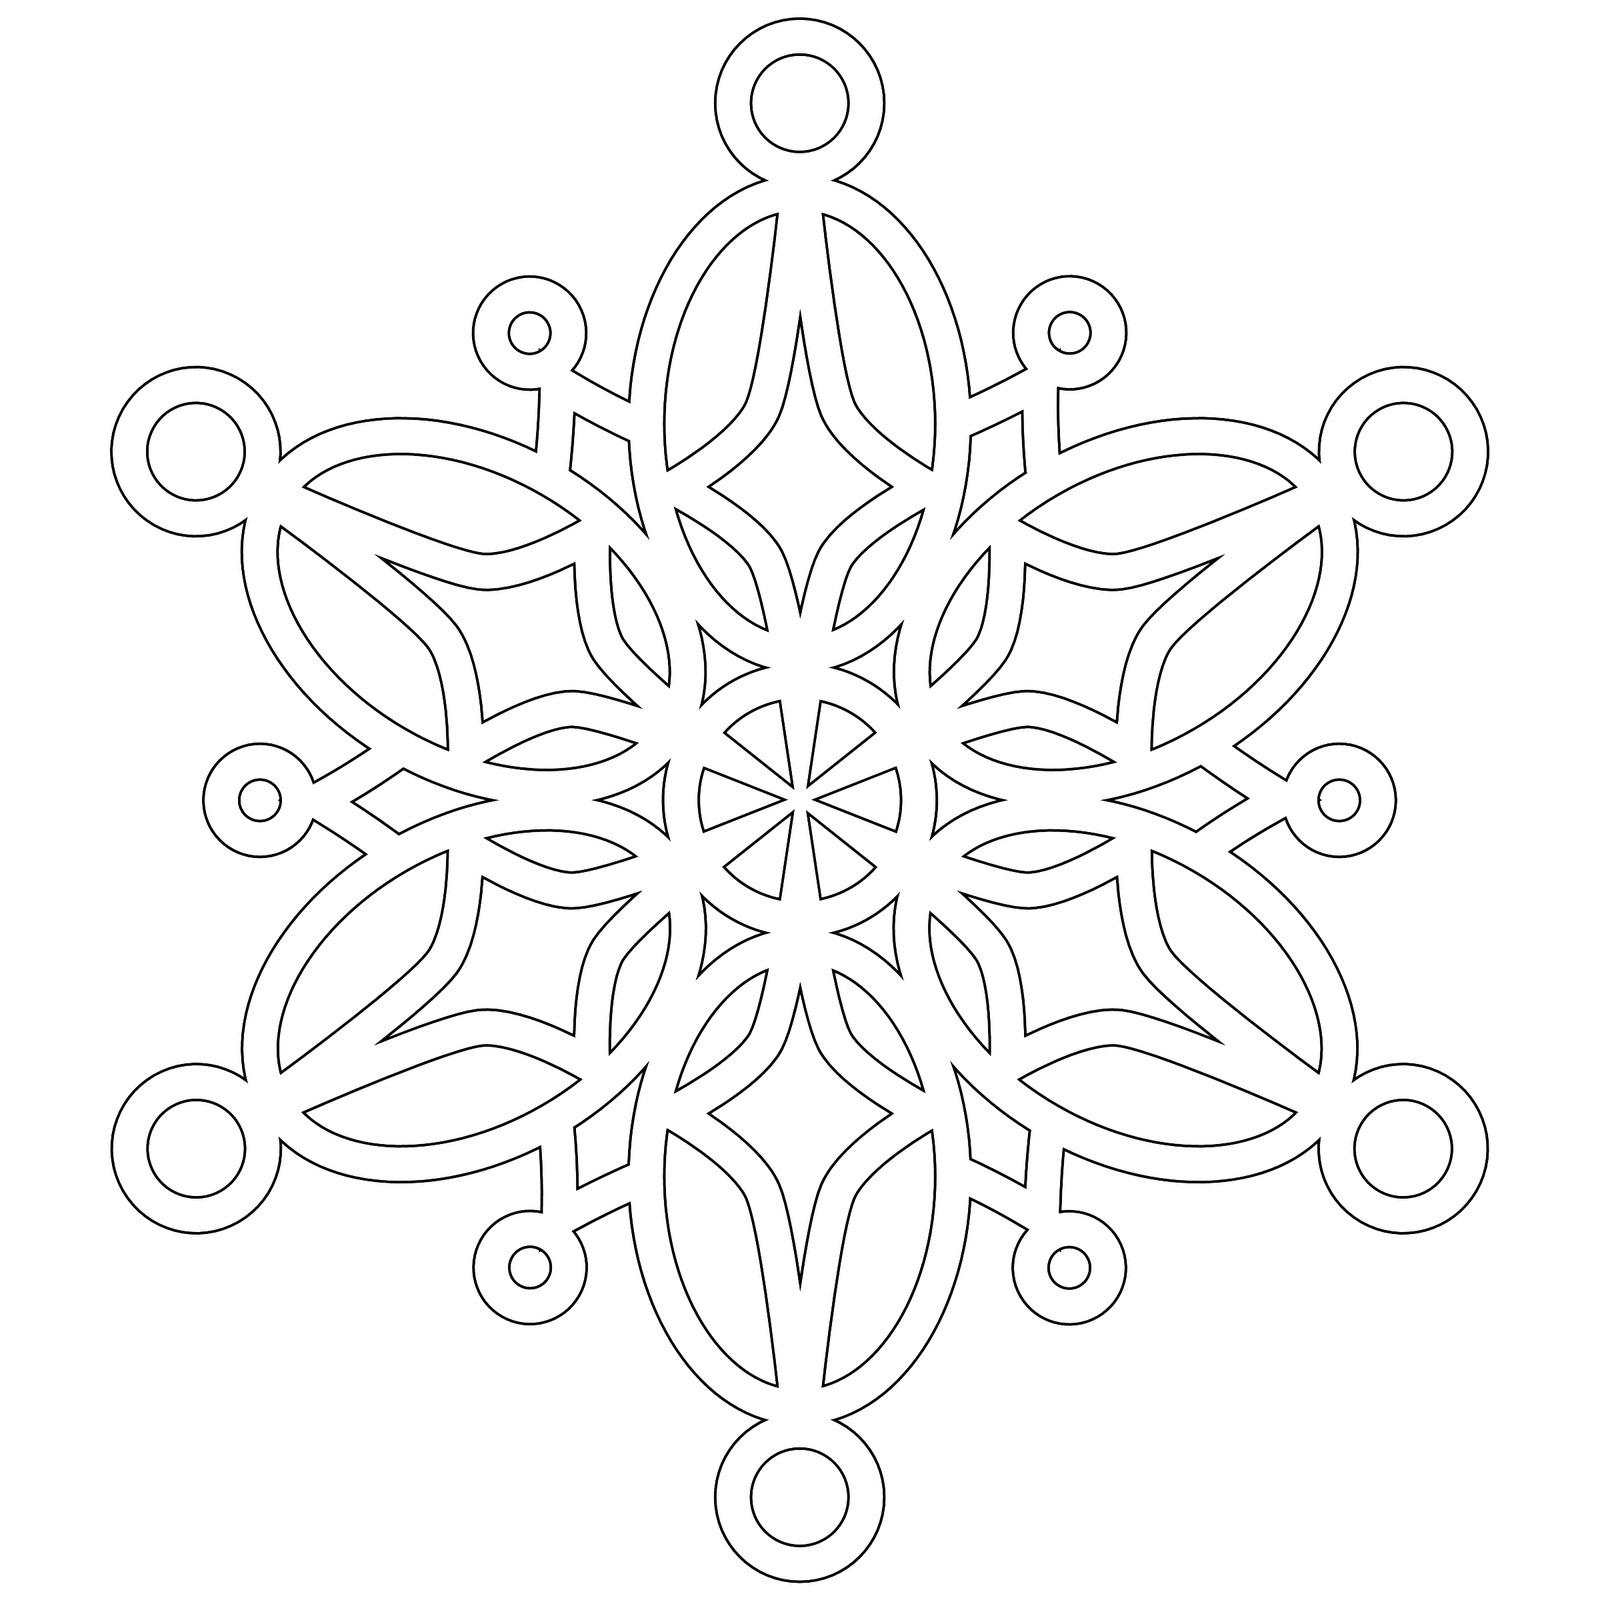 snowflakes coloring page free printable snowflake coloring pages for kids snowflakes page coloring